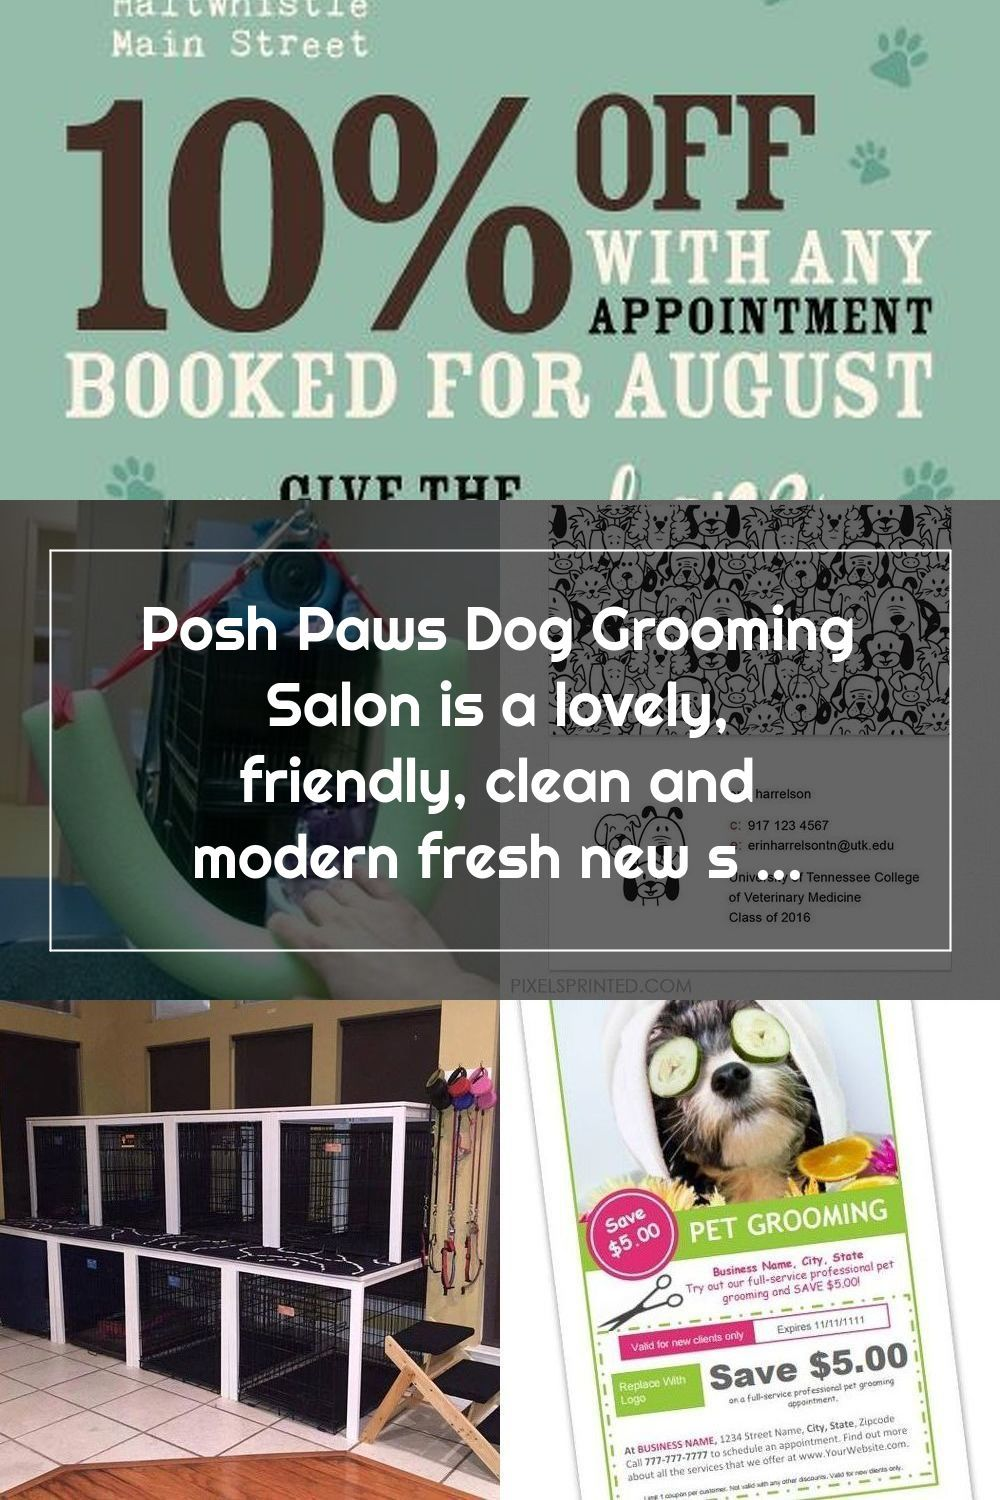 Posh Paws Dog Grooming Salon Is A Lovely Friendly Clean And Modern Fresh New Salon Situated In Northumberland In 2020 Dog Grooming Salons Dog Grooming Grooming Salon